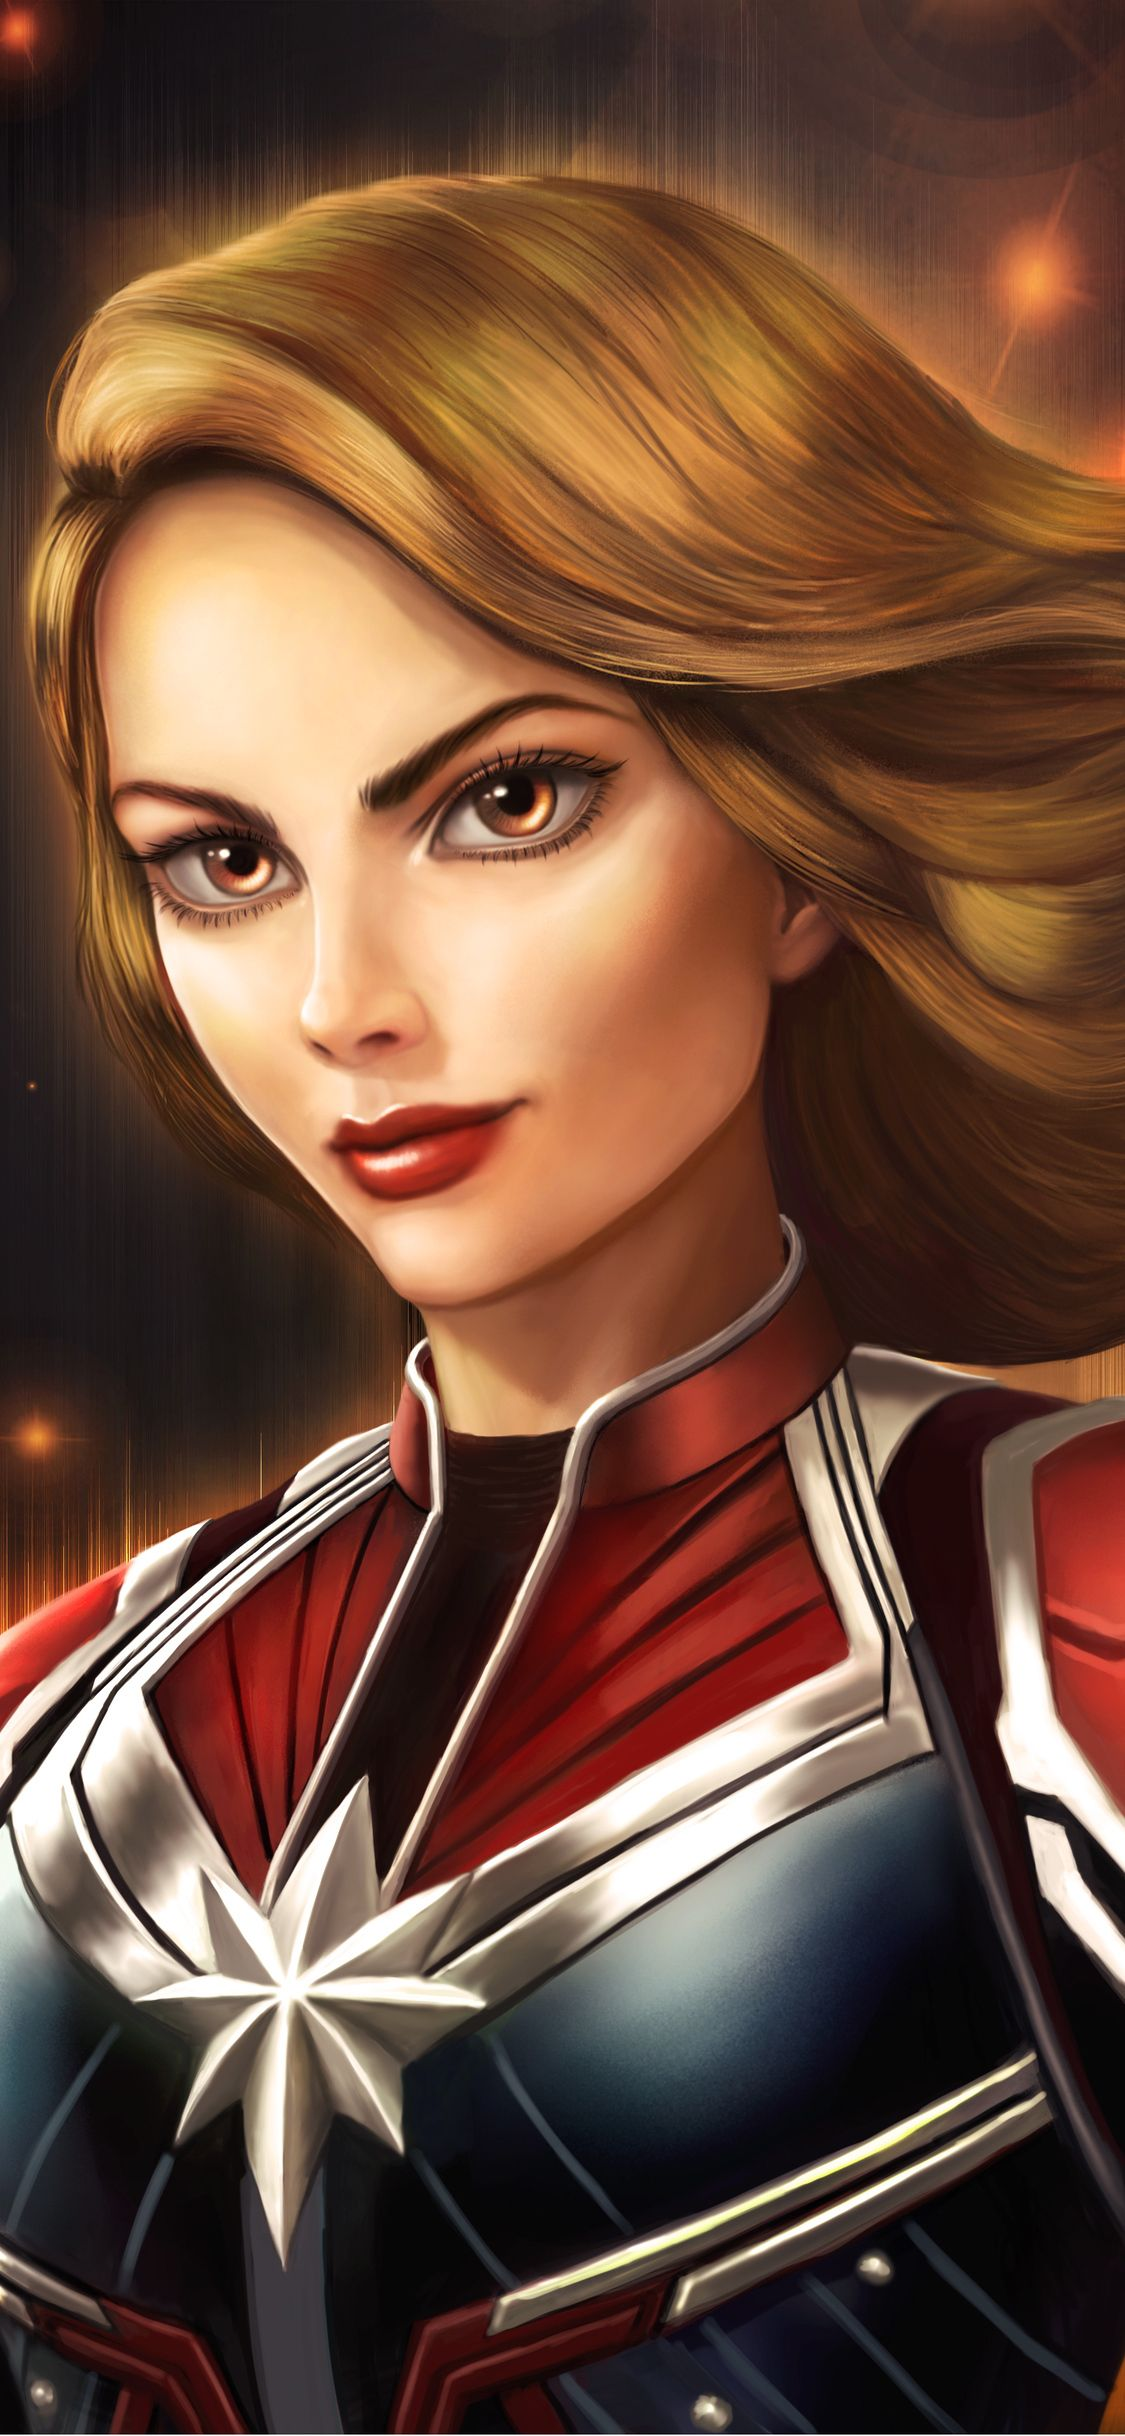 1125x2436 Captain Marvel New Art Iphone Xs Iphone 10 Iphone X Hd 4k Wallpapers Images Backgrounds Photos Captain Marvel Marvel Captain Marvel Carol Danvers